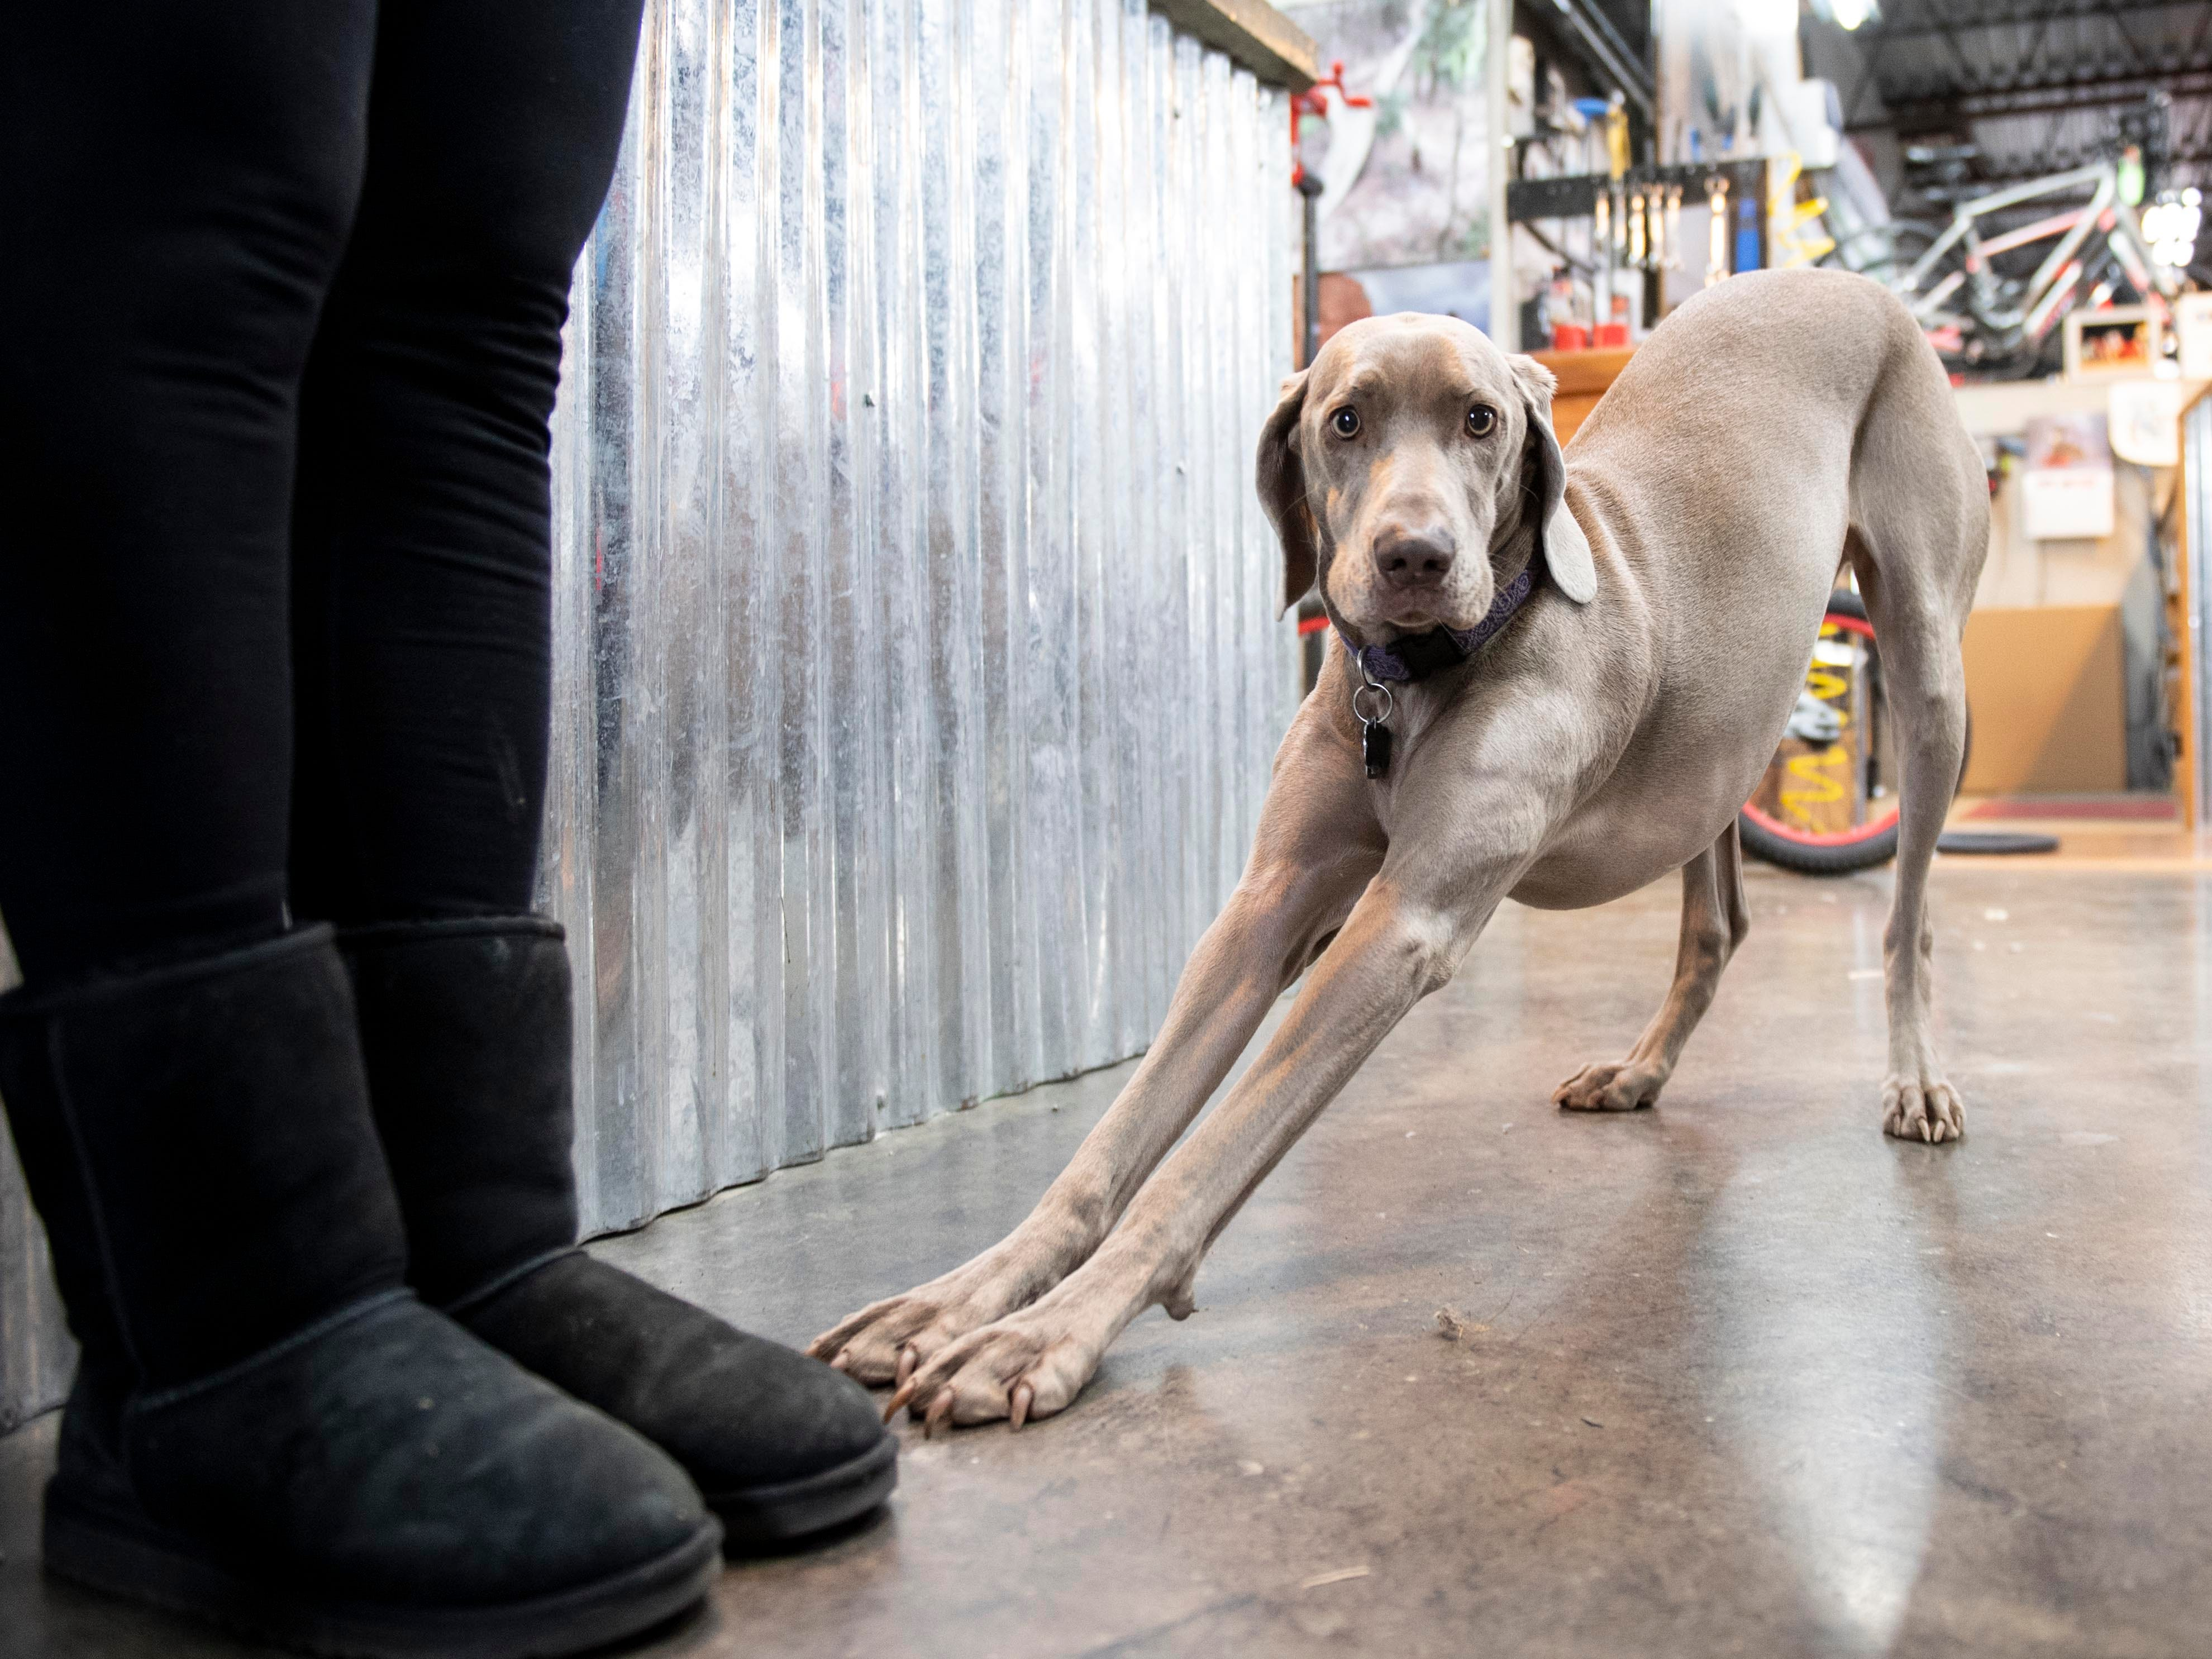 Trail, a 2-year old Weimaraner, usually hanging around Gung Ho Bikes, stretches while her owner, Penny Zech, recalls her first bike on Friday, Dec. 7, 2018. Penny Zech, the owner of Gung Ho Bikes, along with her husband and manager, Jay Zech, fixed up and donated nearly 150 bikes to local charities. This was the fifth year they did the event.